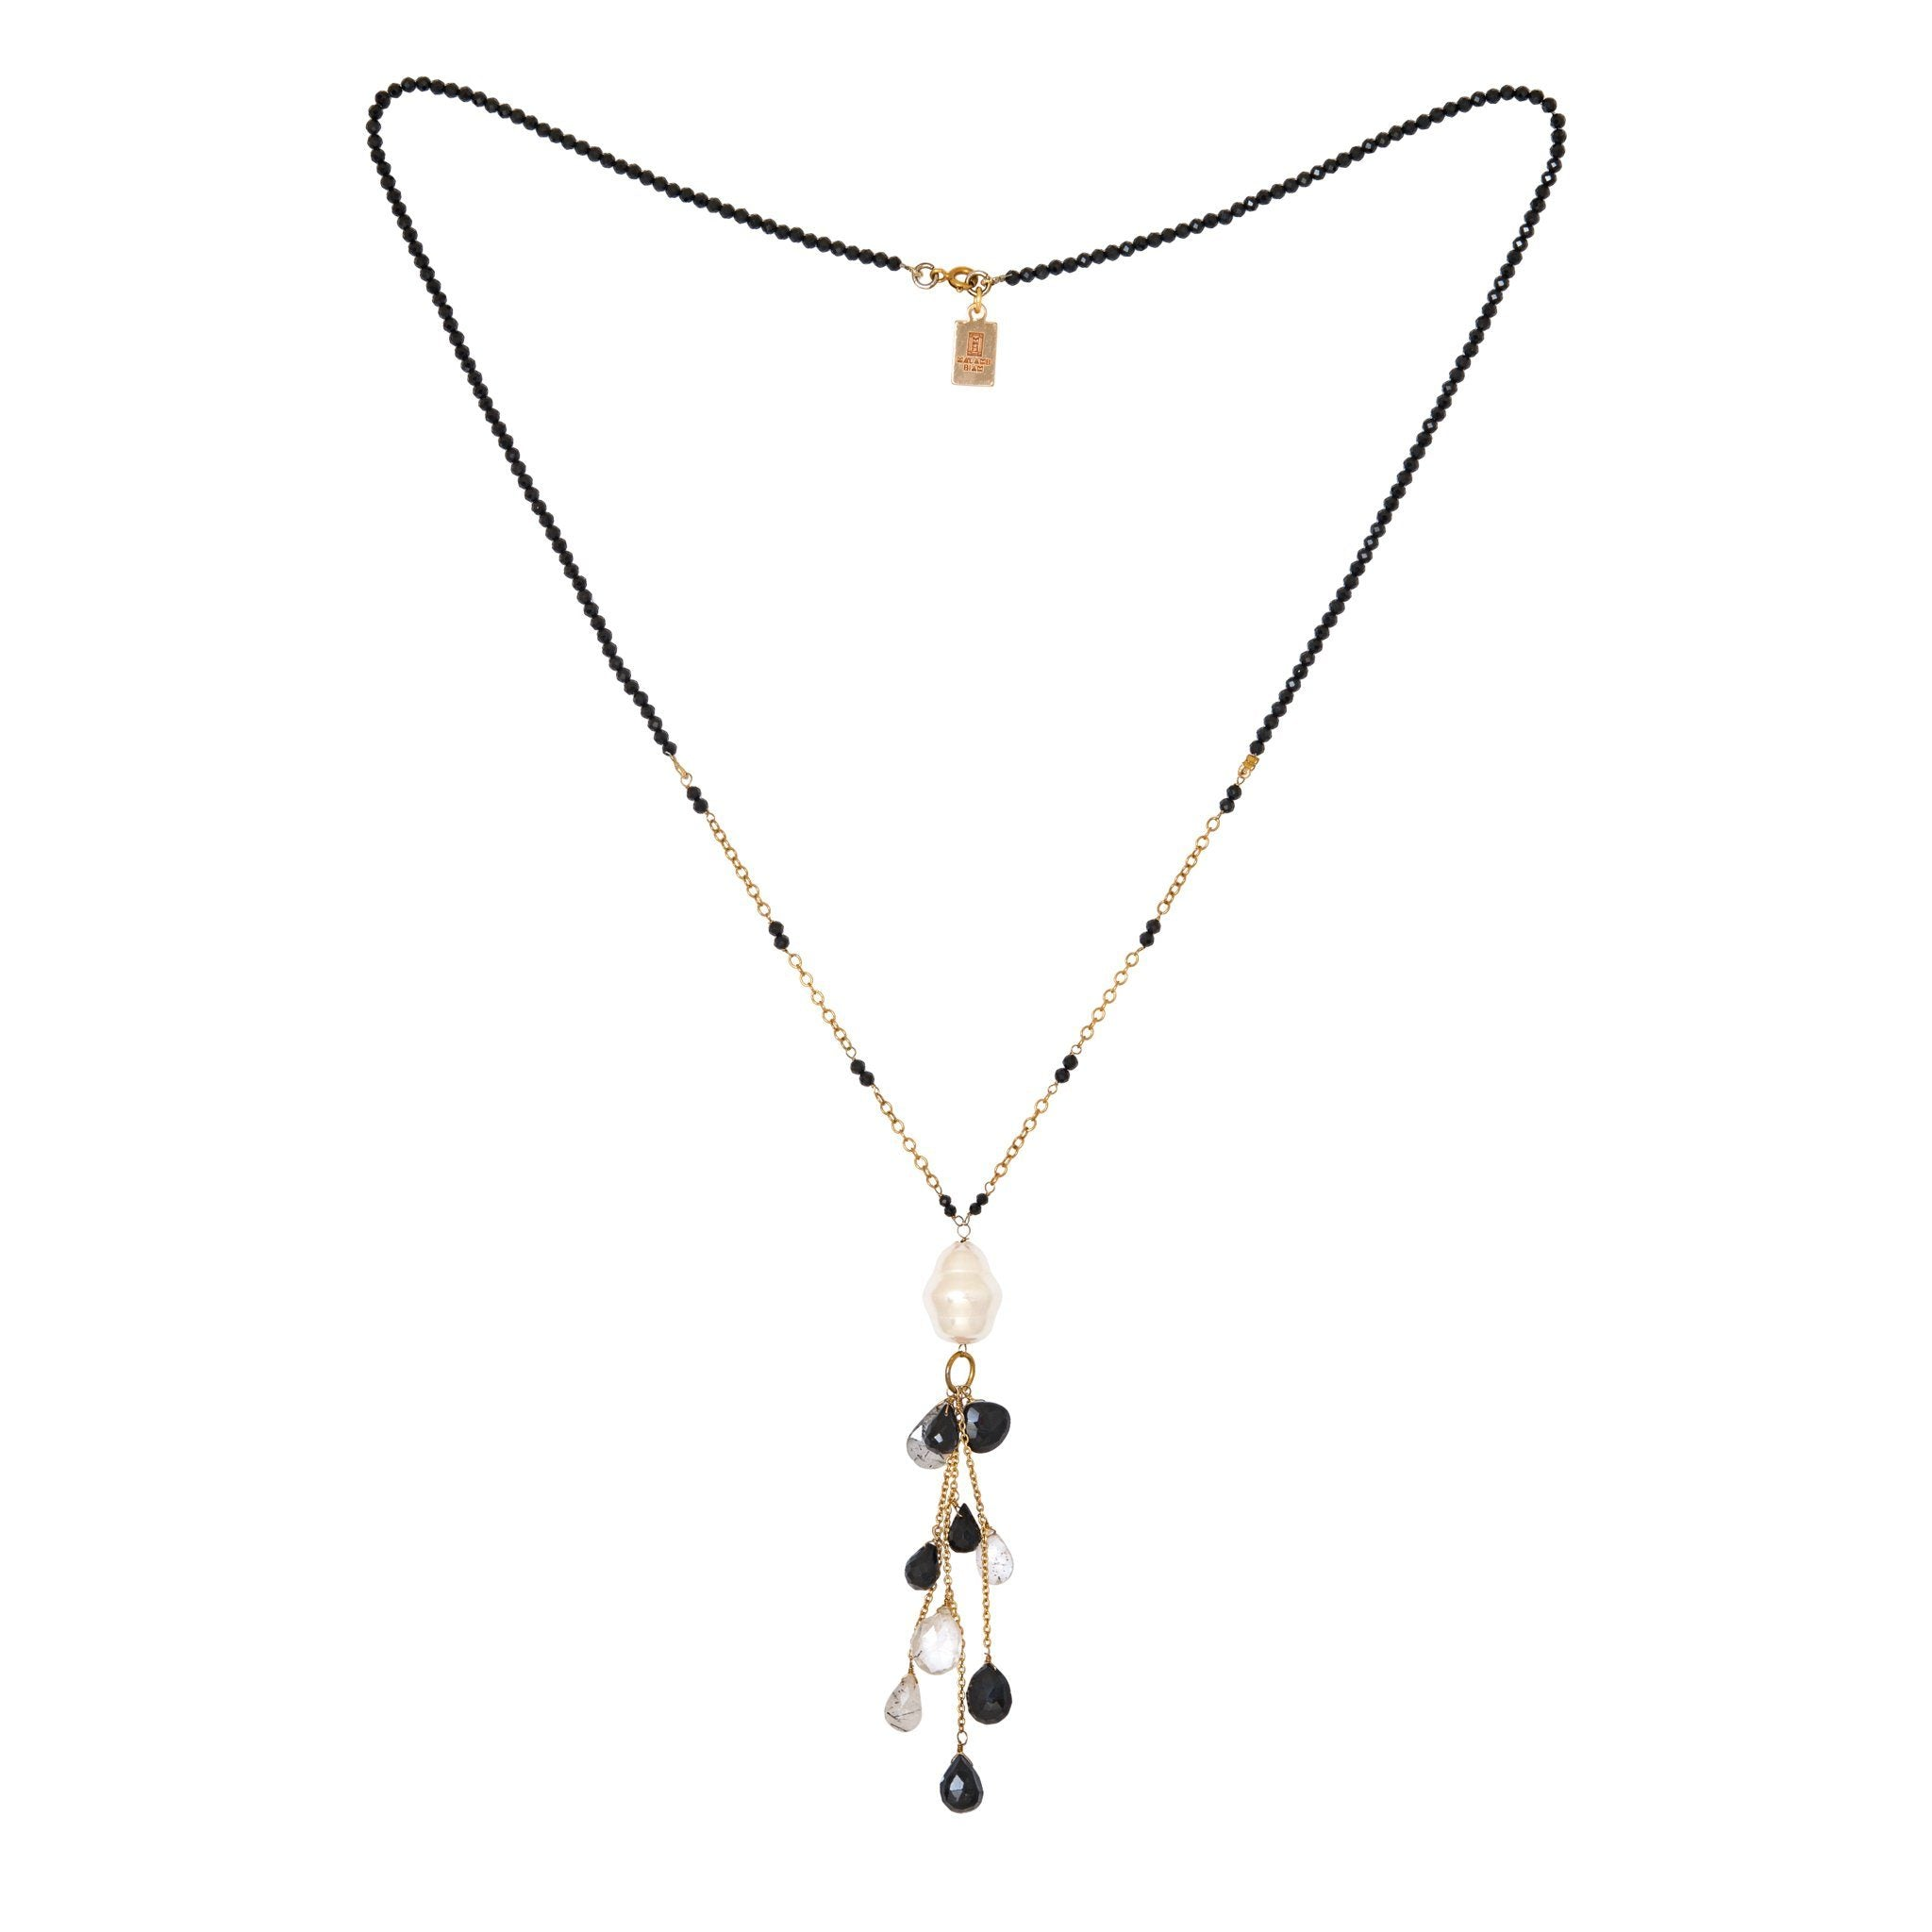 COCO pearl  and black onyx necklace with rutile drops - MadamSiam